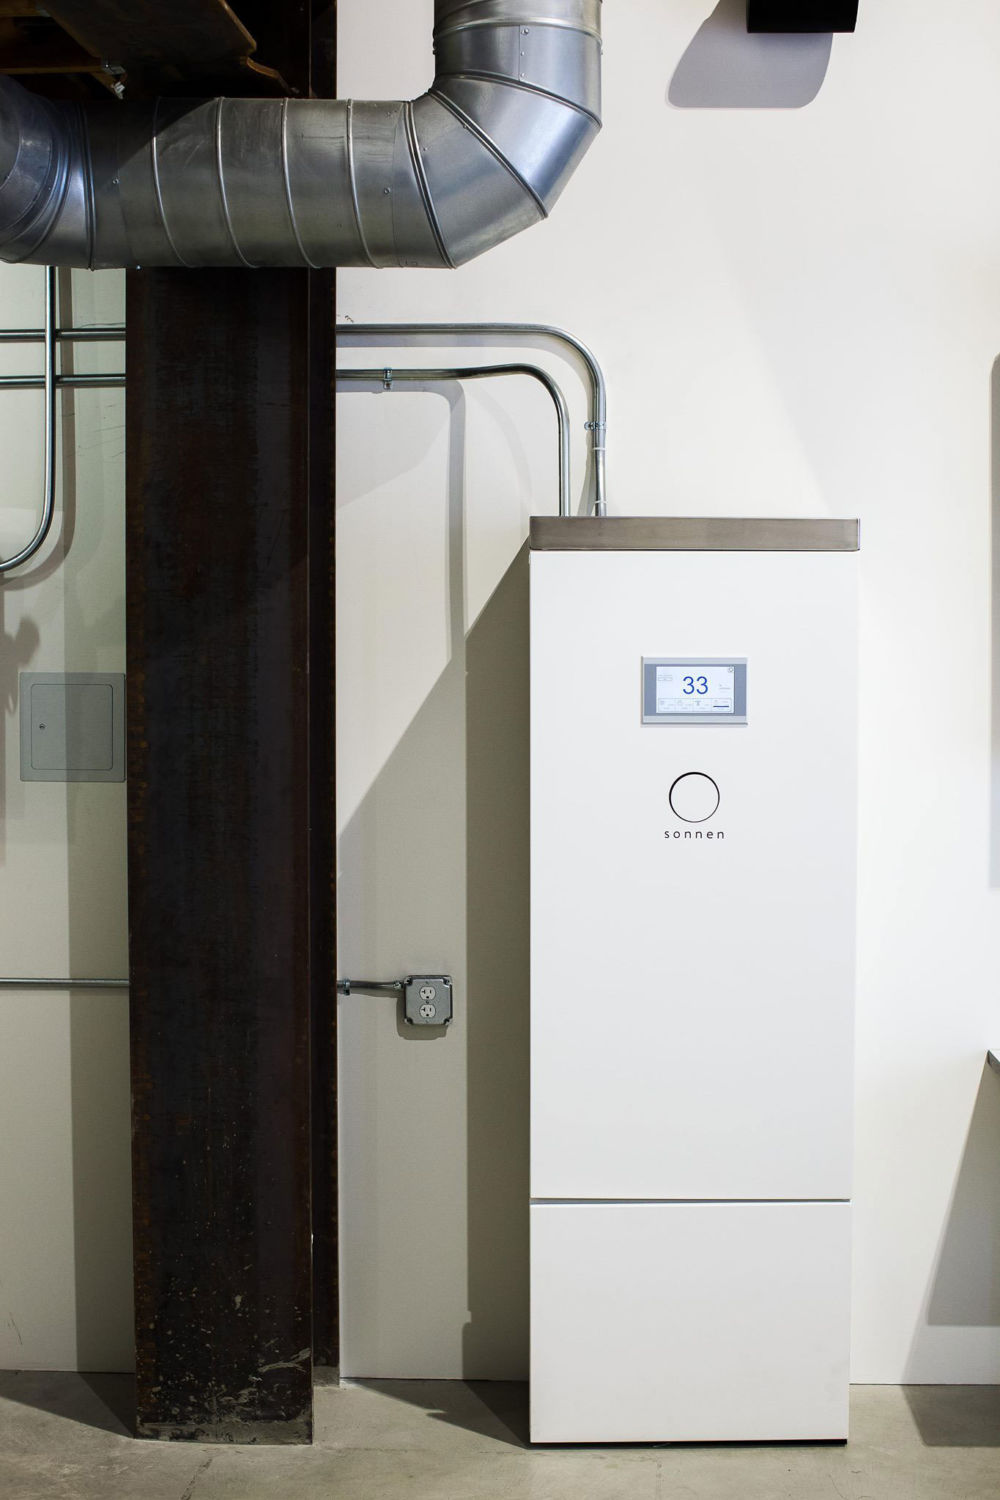 In Germany, Consumers Embrace a Shift to Home Batteries - Yale E360